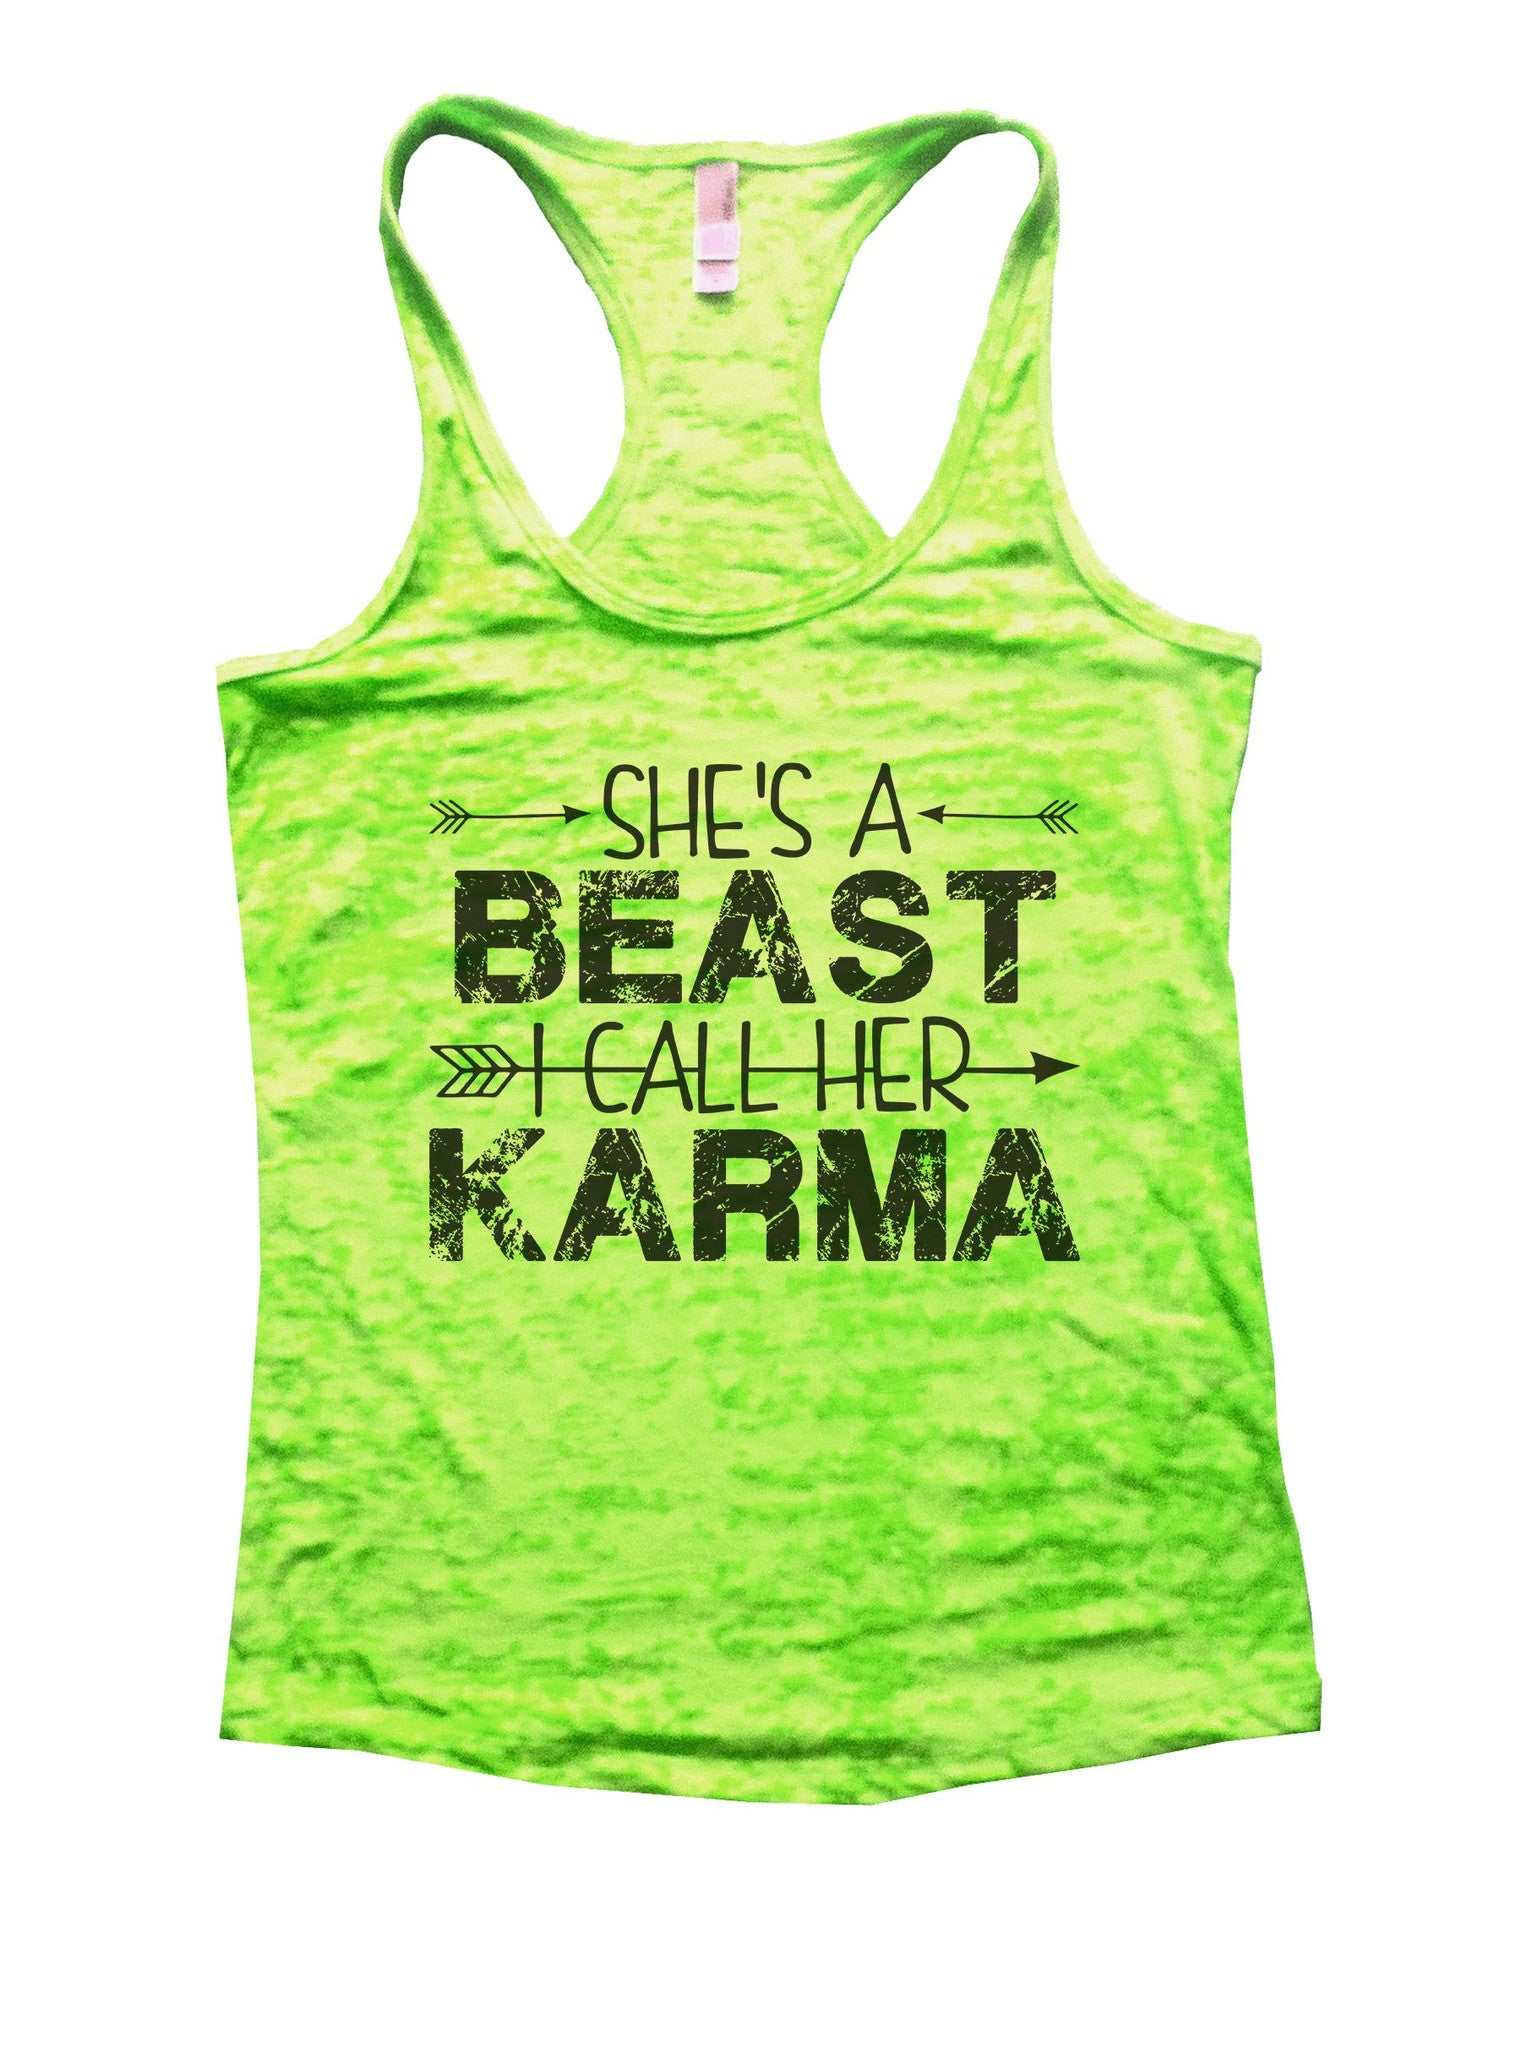 She's A Beast I Call Her Karma Burnout Tank Top By BurnoutTankTops.com - 1125 - Funny Shirts Tank Tops Burnouts and Triblends  - 2